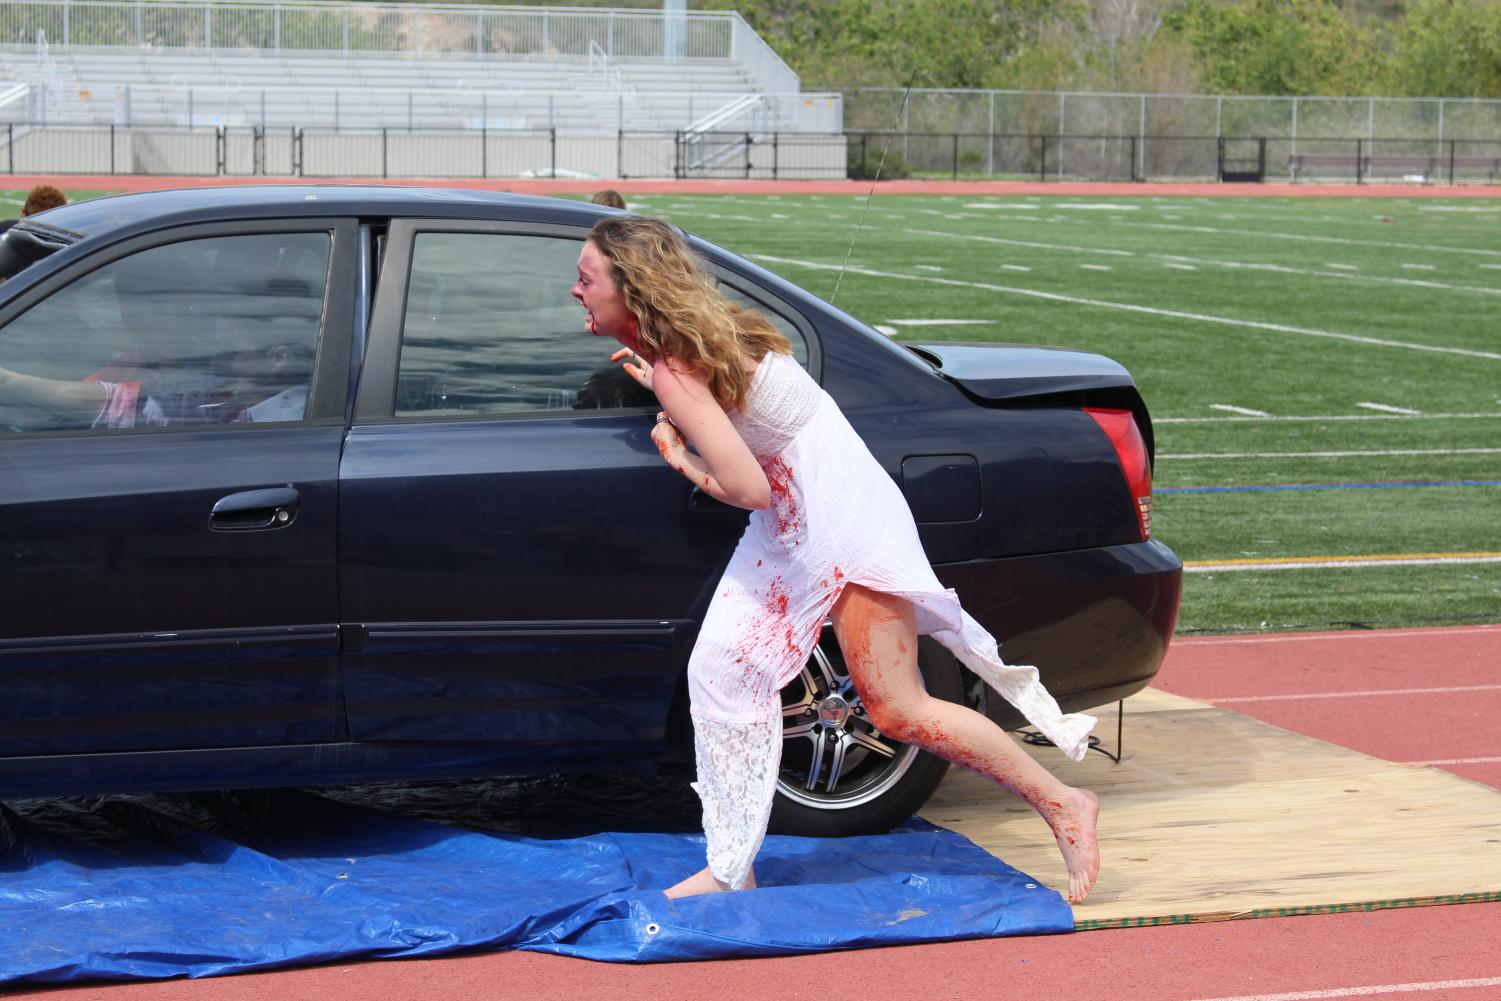 Senior+Paige+Loeffler+rushes+out+of+the+vehicle+to+evaluate+the+extent+of+the+injuries+caused+during+the+Every+15+Minutes+simulation.